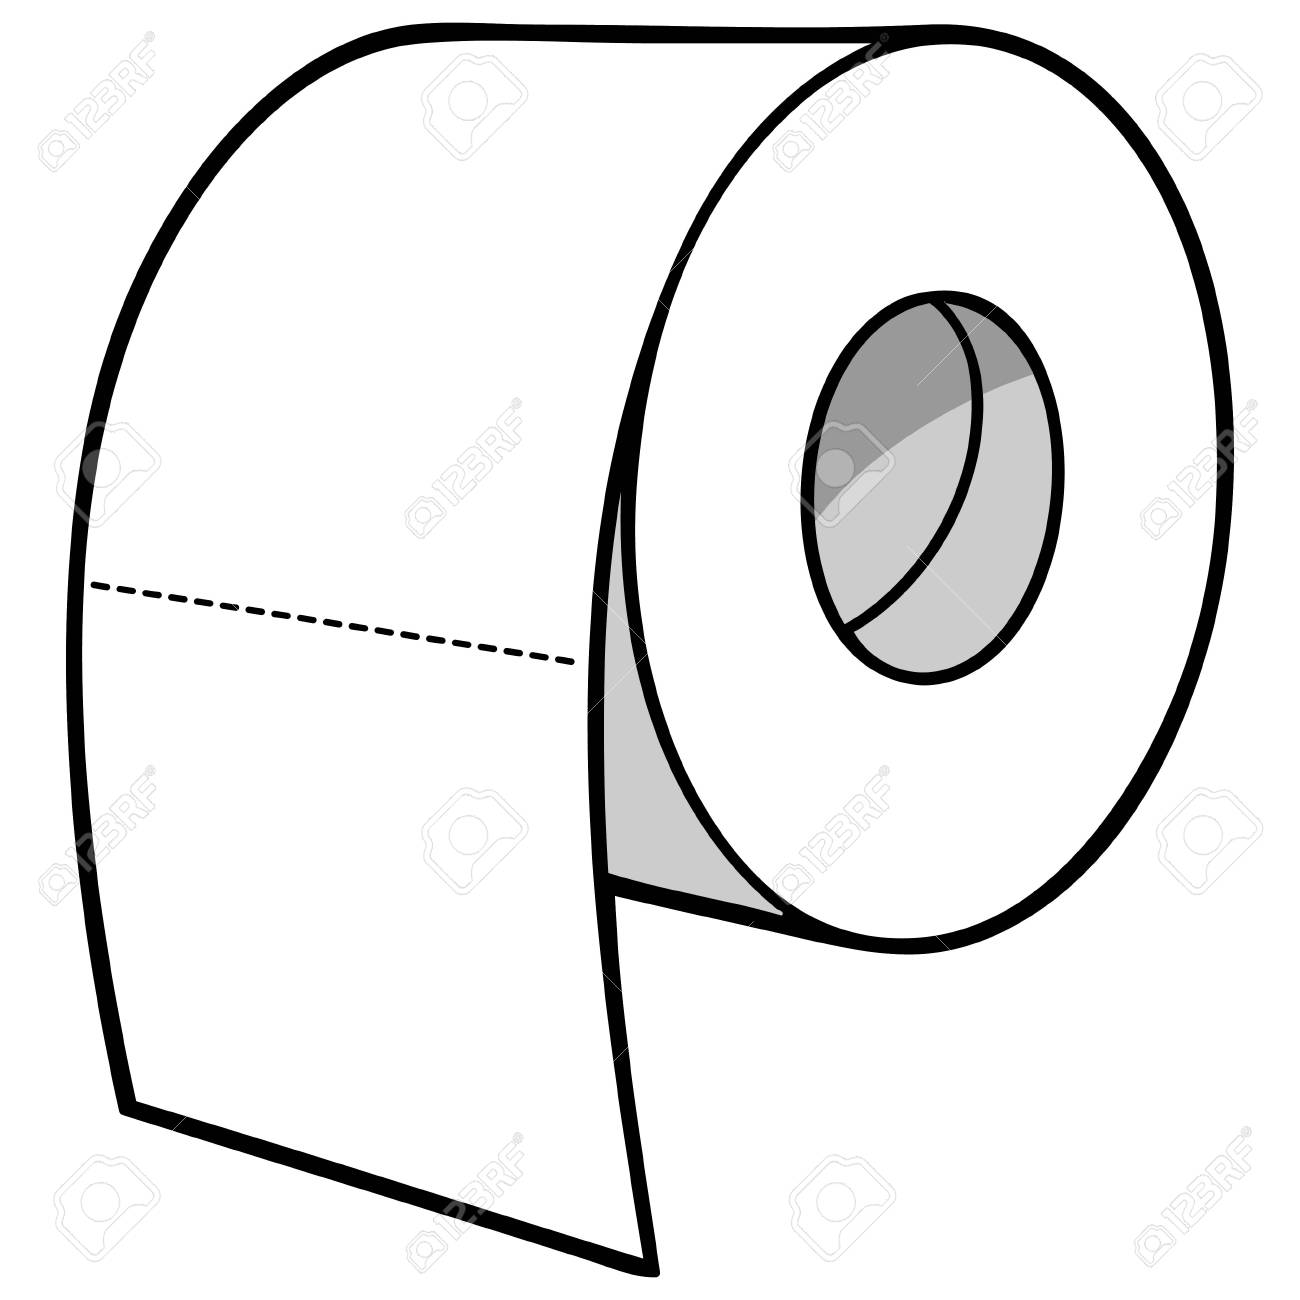 toilet paper illustration royalty free cliparts vectors and stock rh 123rf com toilet paper clip art free toilet paper clipart black and white